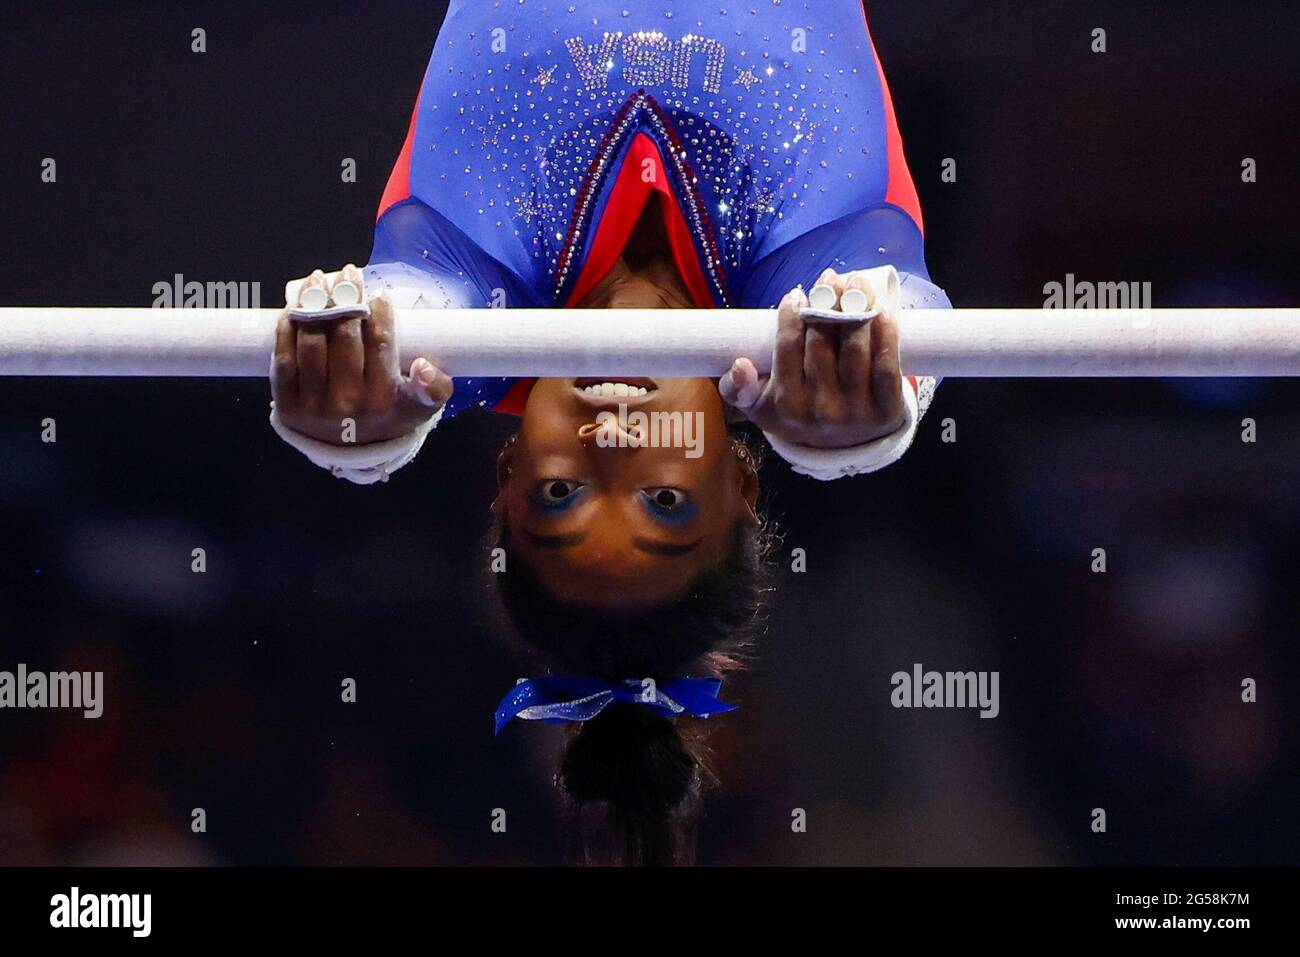 Simone Biles performs on the uneven bars as she competes at the U.S. Women's Olympic Gymnastics trials in St Louis , Missouri, U.S. June 25, 2021.  REUTERS/Lindsey Wasson Stock Photo